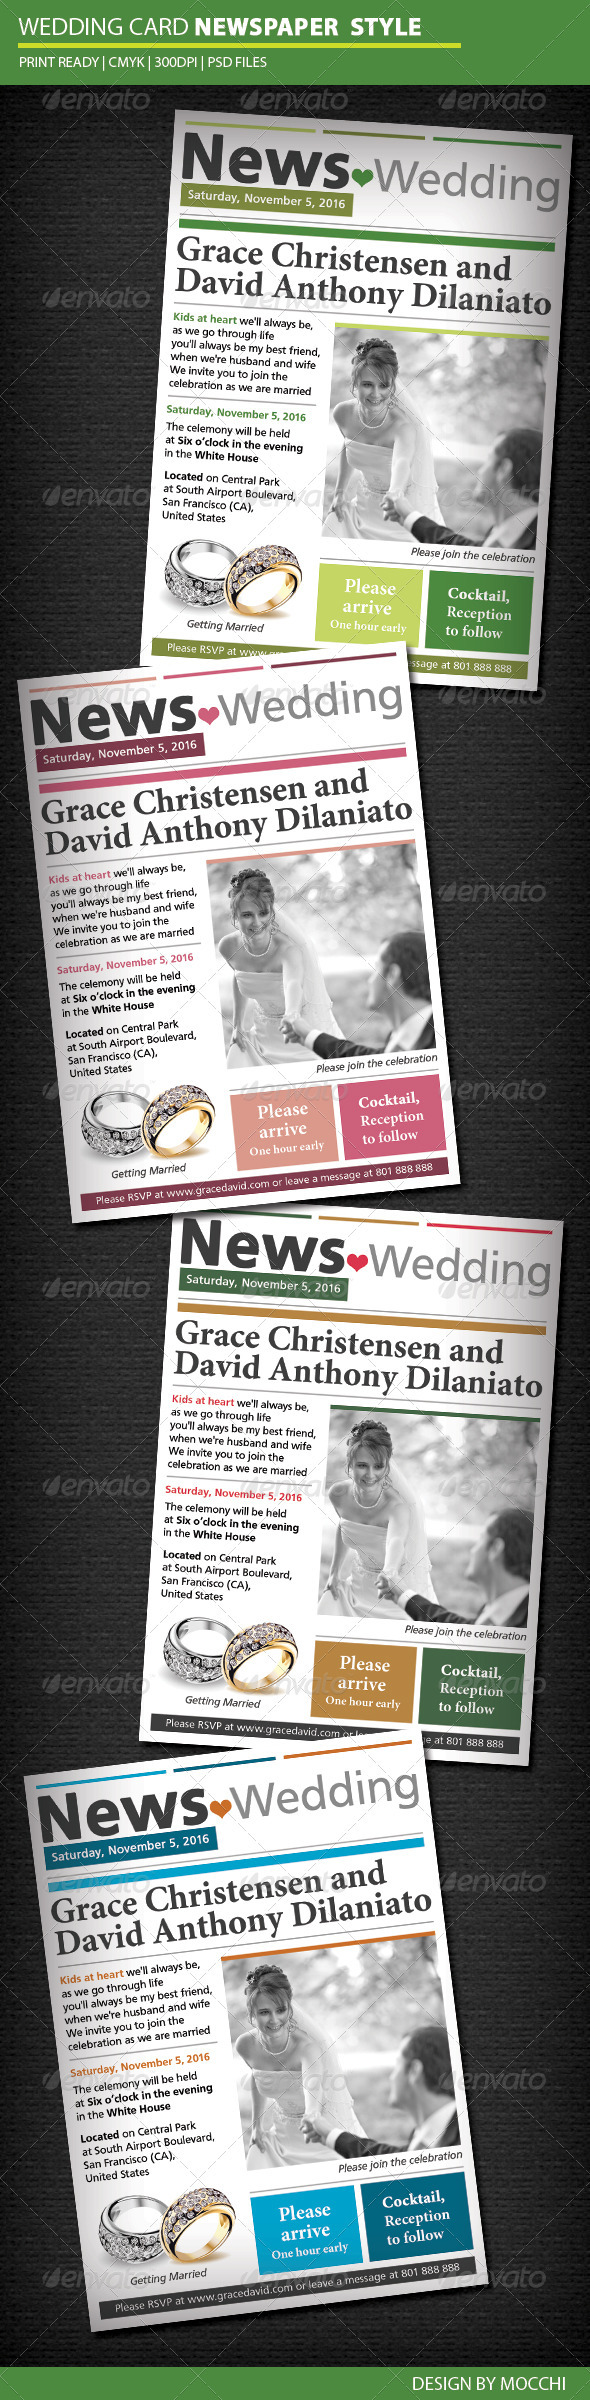 GraphicRiver Wedding Card Newspaper Style 3310041